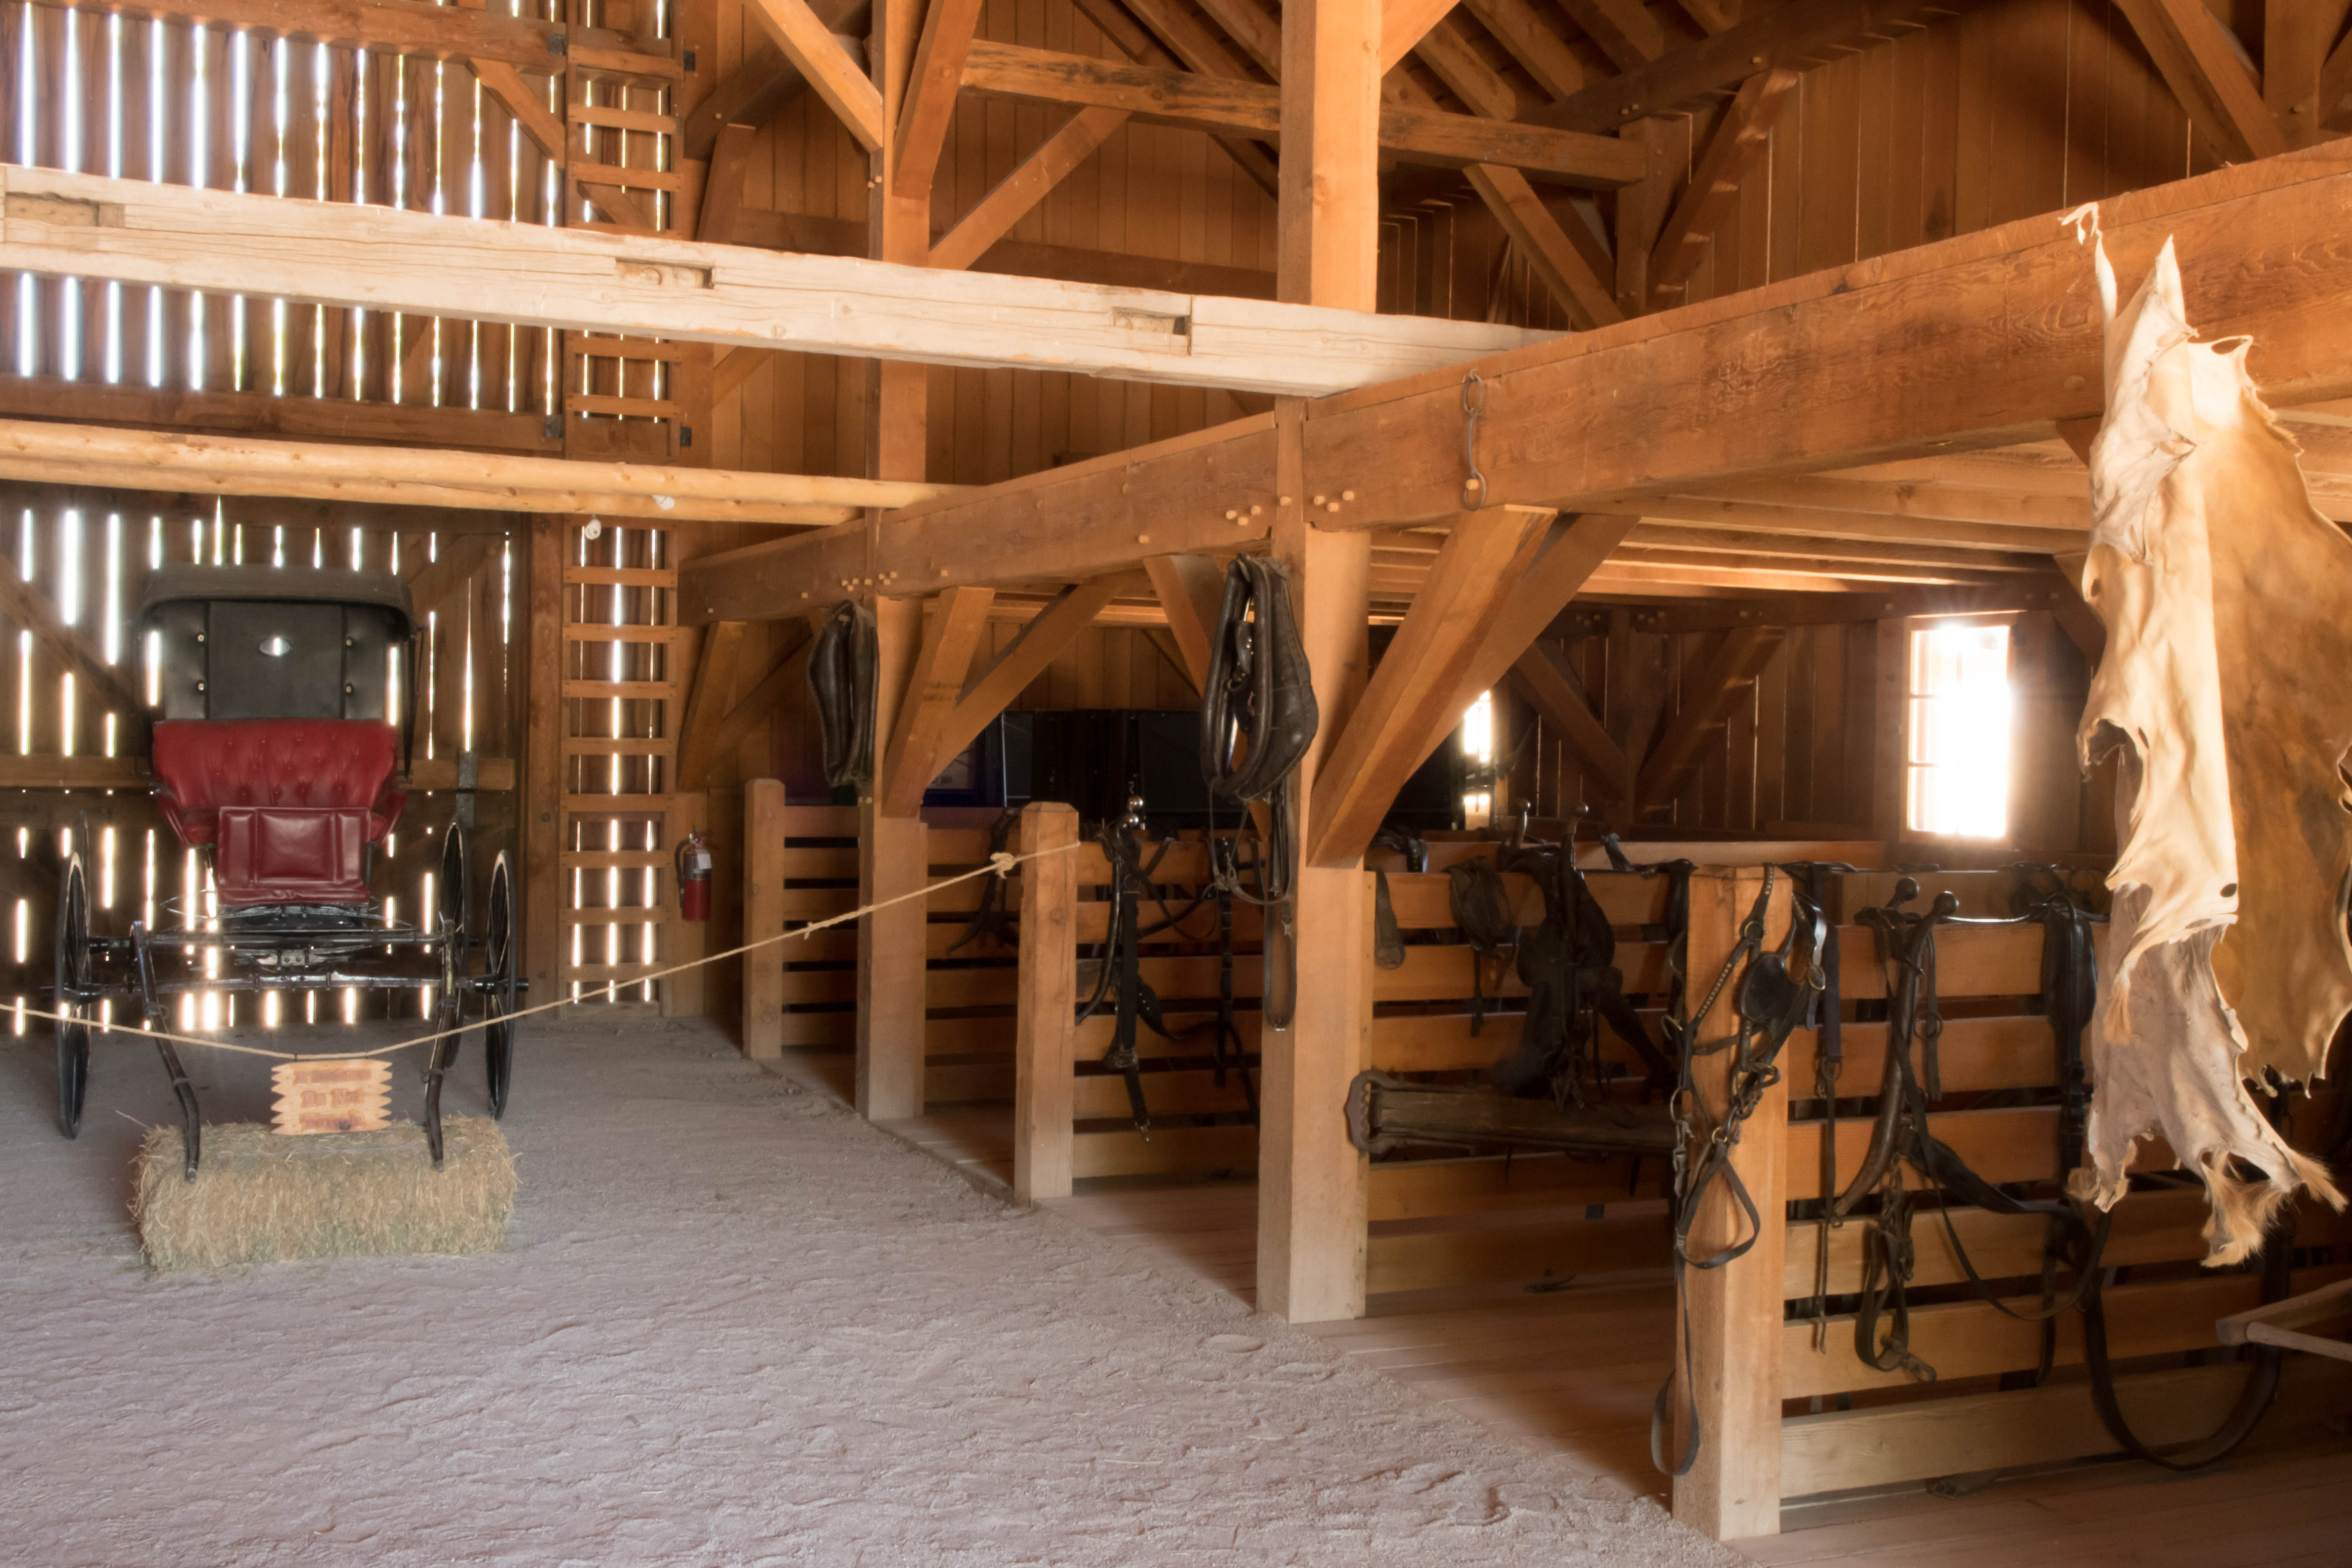 Interior of the barn at Cove Fort Historical Site, Millard County, Utah, June 25, 2016   Photo by Kathleen Lillywhite, St. George News